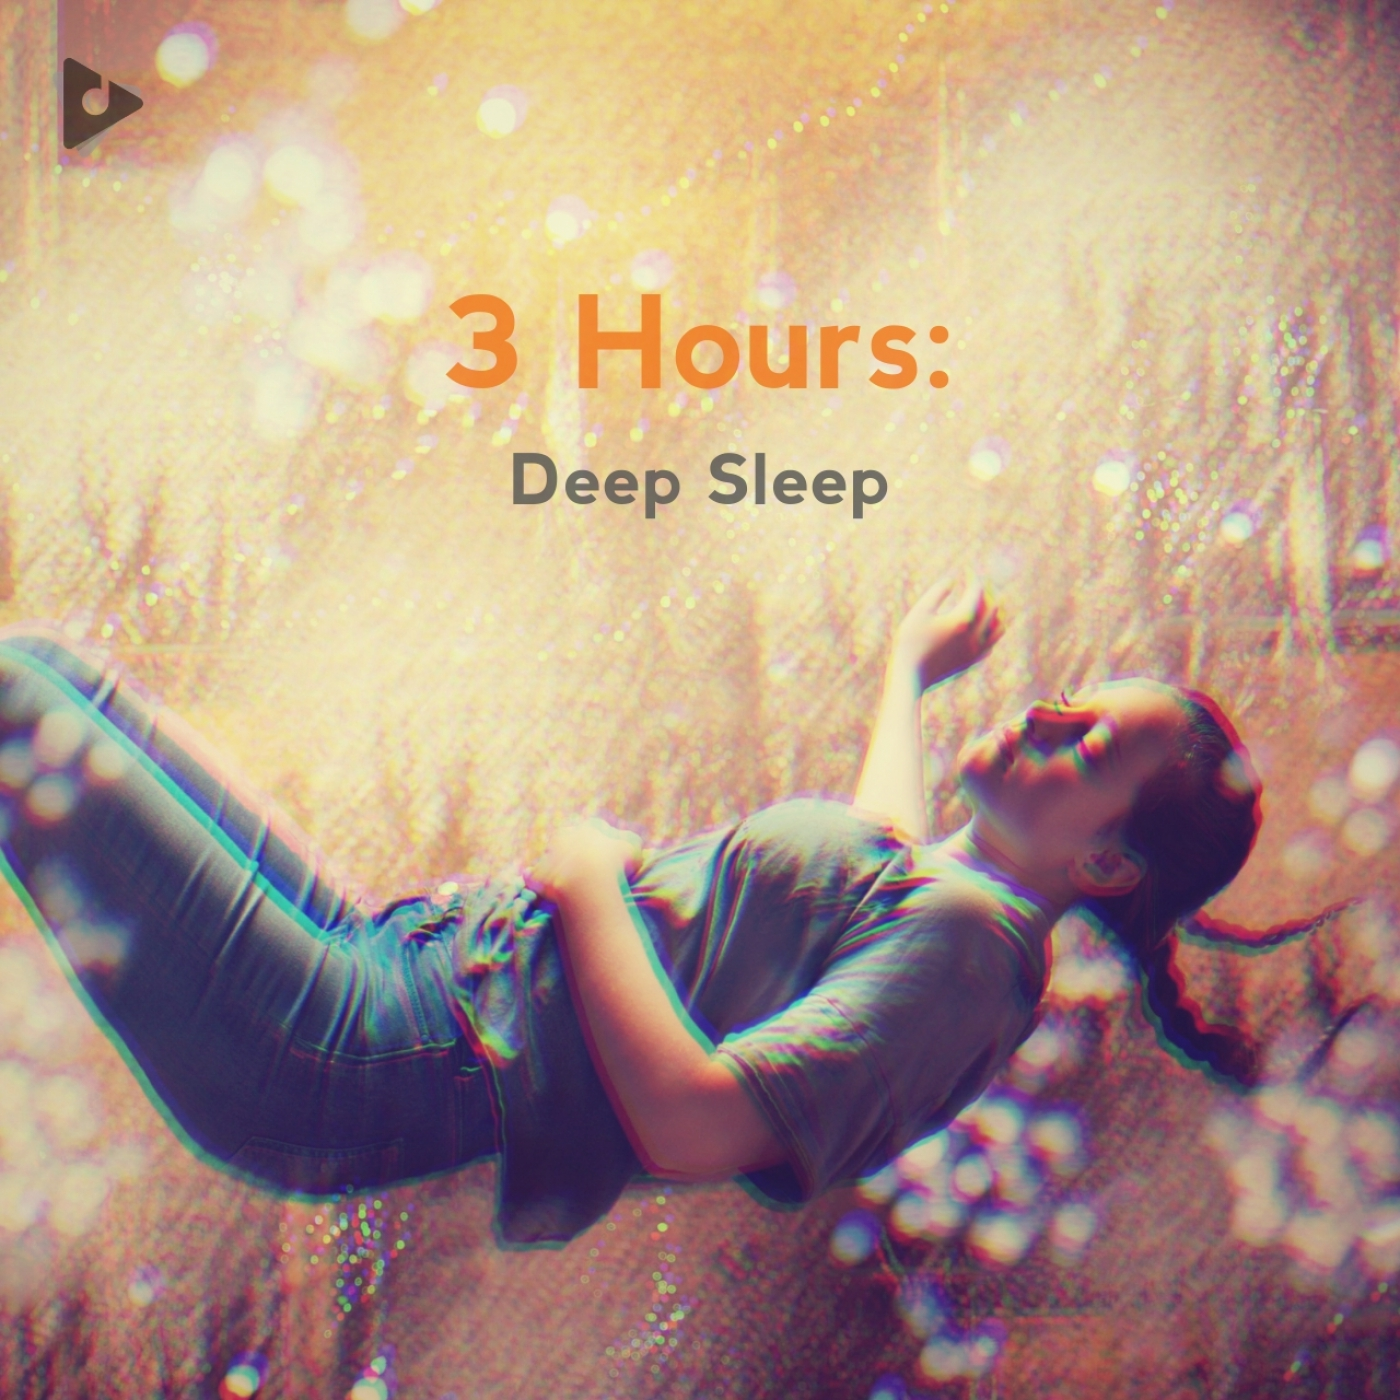 3 Hours: Deep Sleep